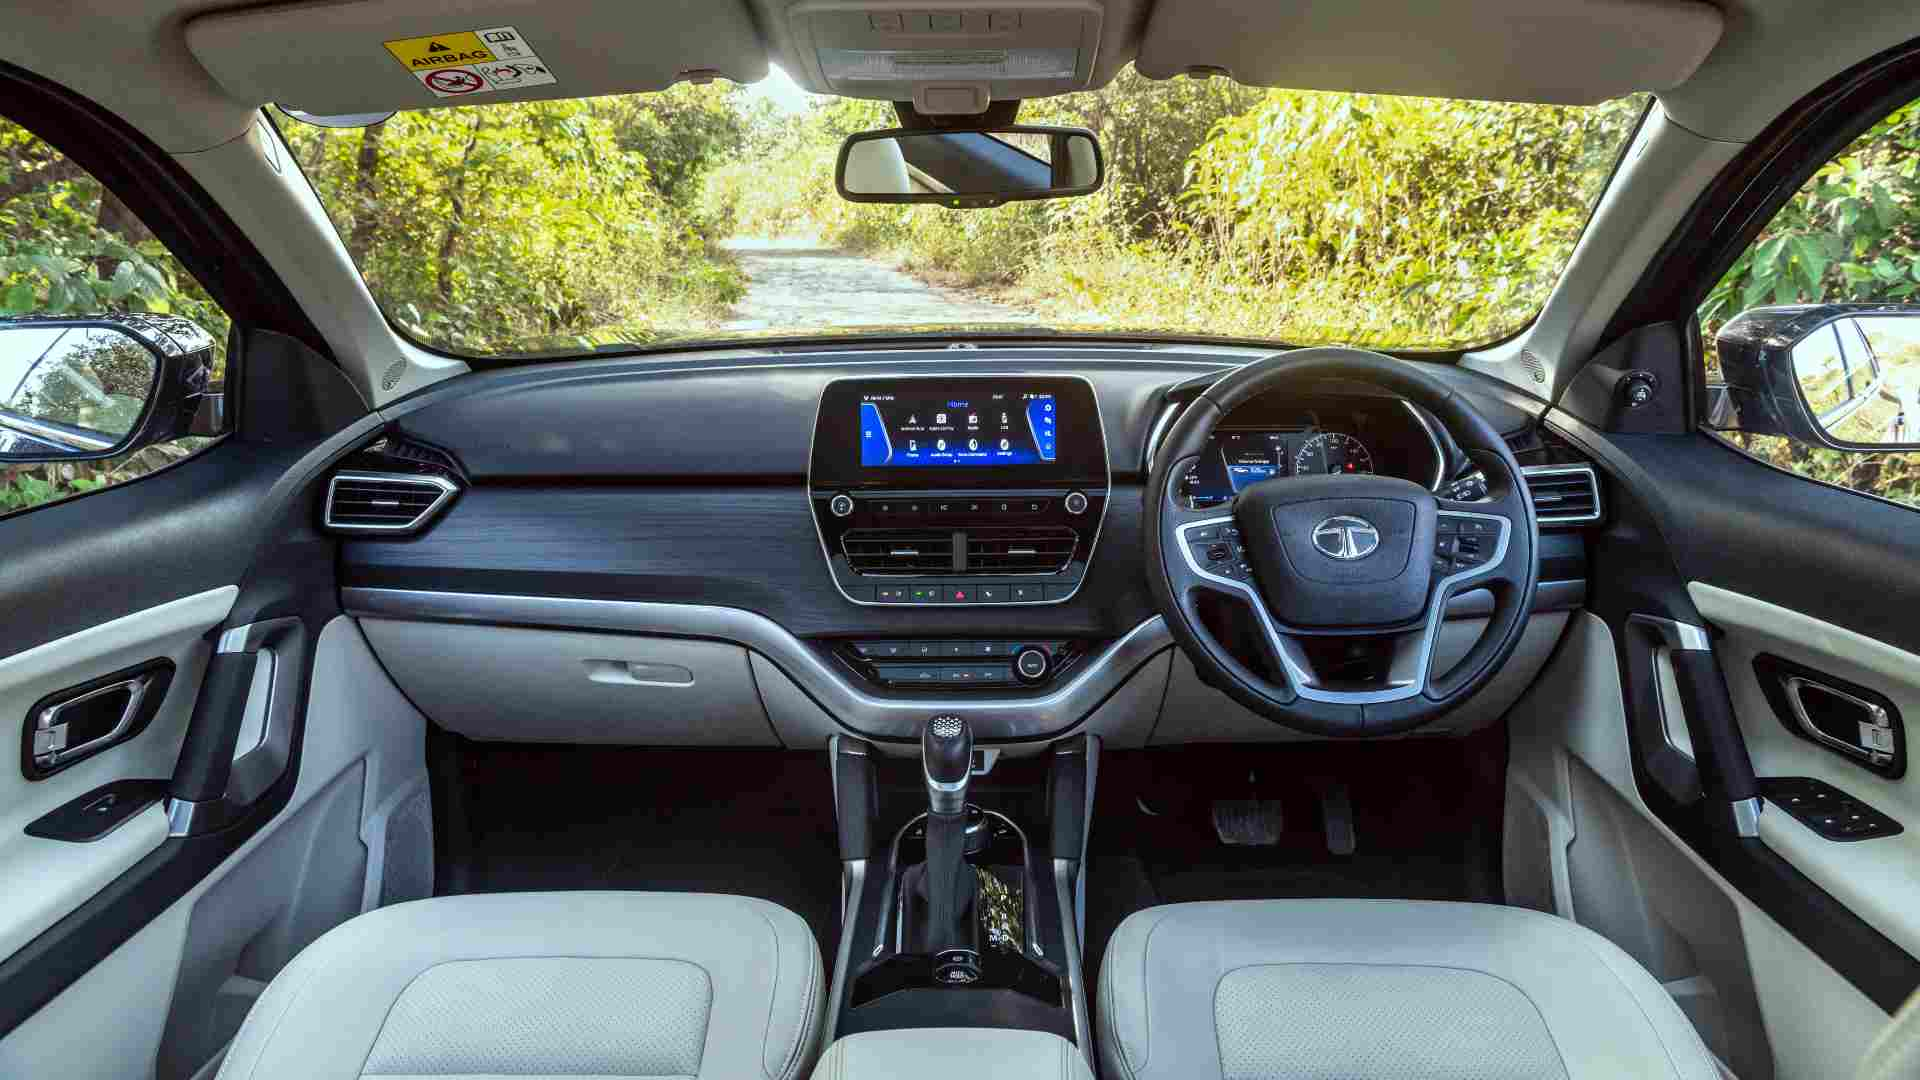 With a couple of small changes, the Tata Safari's interior feels more premium than the Harrier's. Image: Overdrive/Anis Shaikh